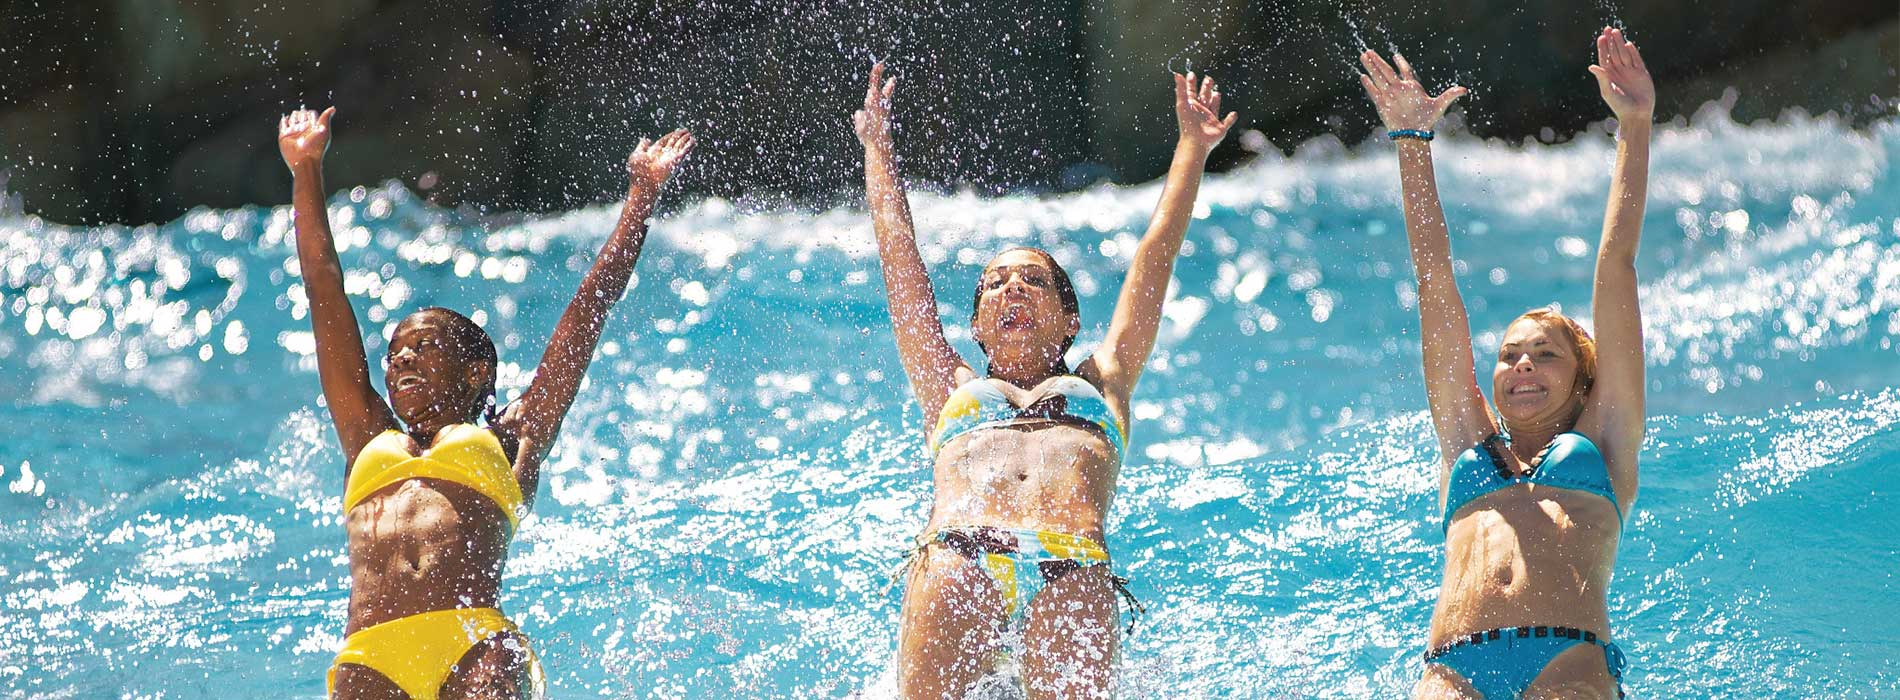 Splash and play in the wave pools at Aquatica